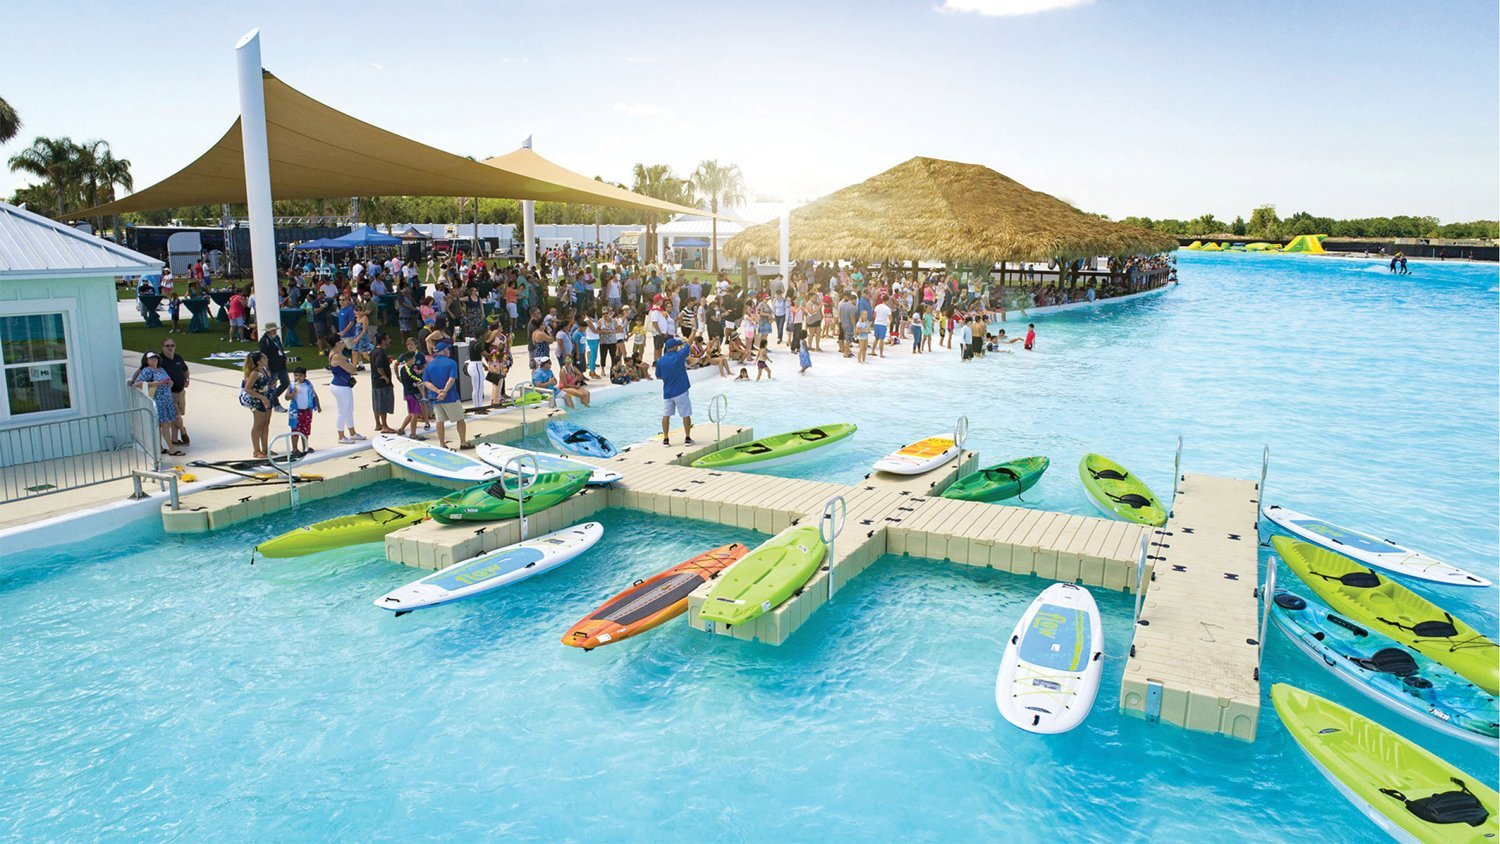 Why It's Fun Is Crystal Clear<br> A Profile of Crystal Lagoon in Wesley Chapel, Fla.